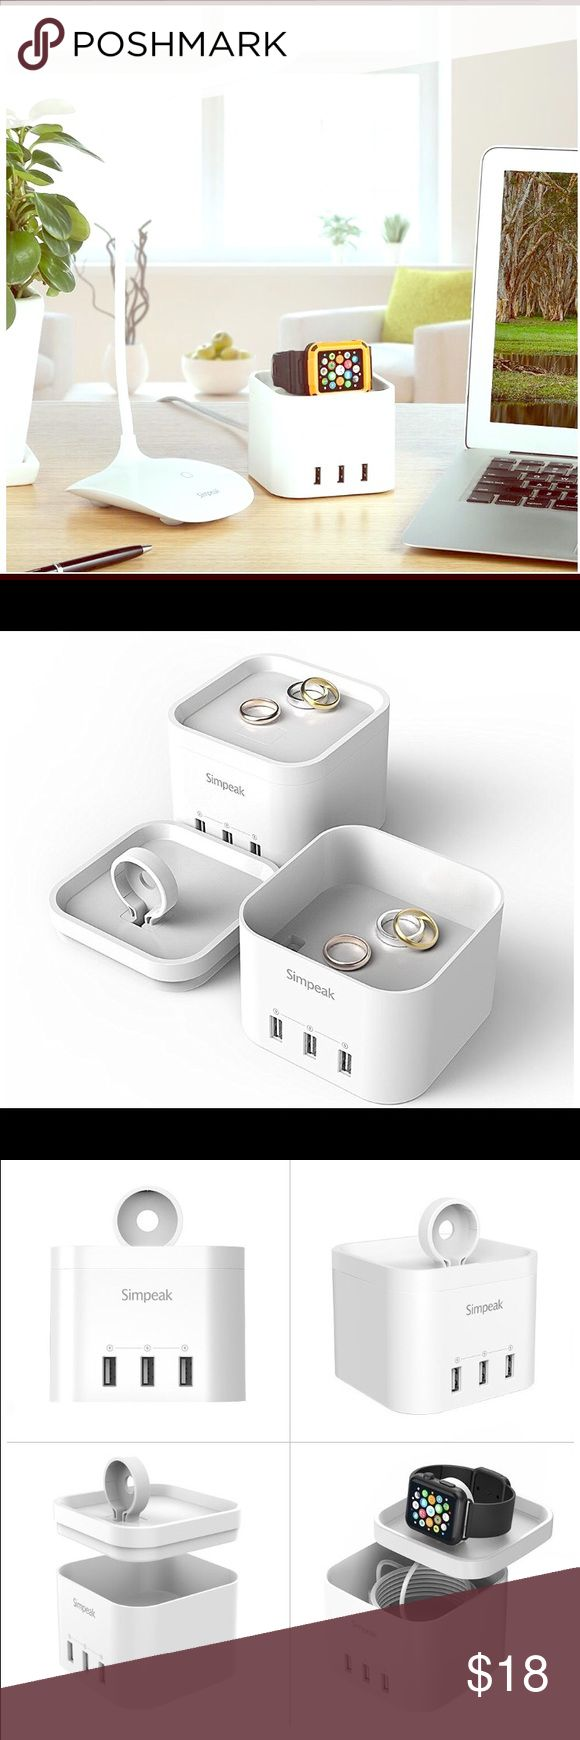 Smart Charging for All Ports and jewelry holder With built-in smart chips, each port can automatically detects your device and delivers fastest charge required (up to 2.4 amps). Package Includes  1 x Apple Watch Charging Stand with Universal USB Port  1 x AC Power Cable  1x User Manual Other